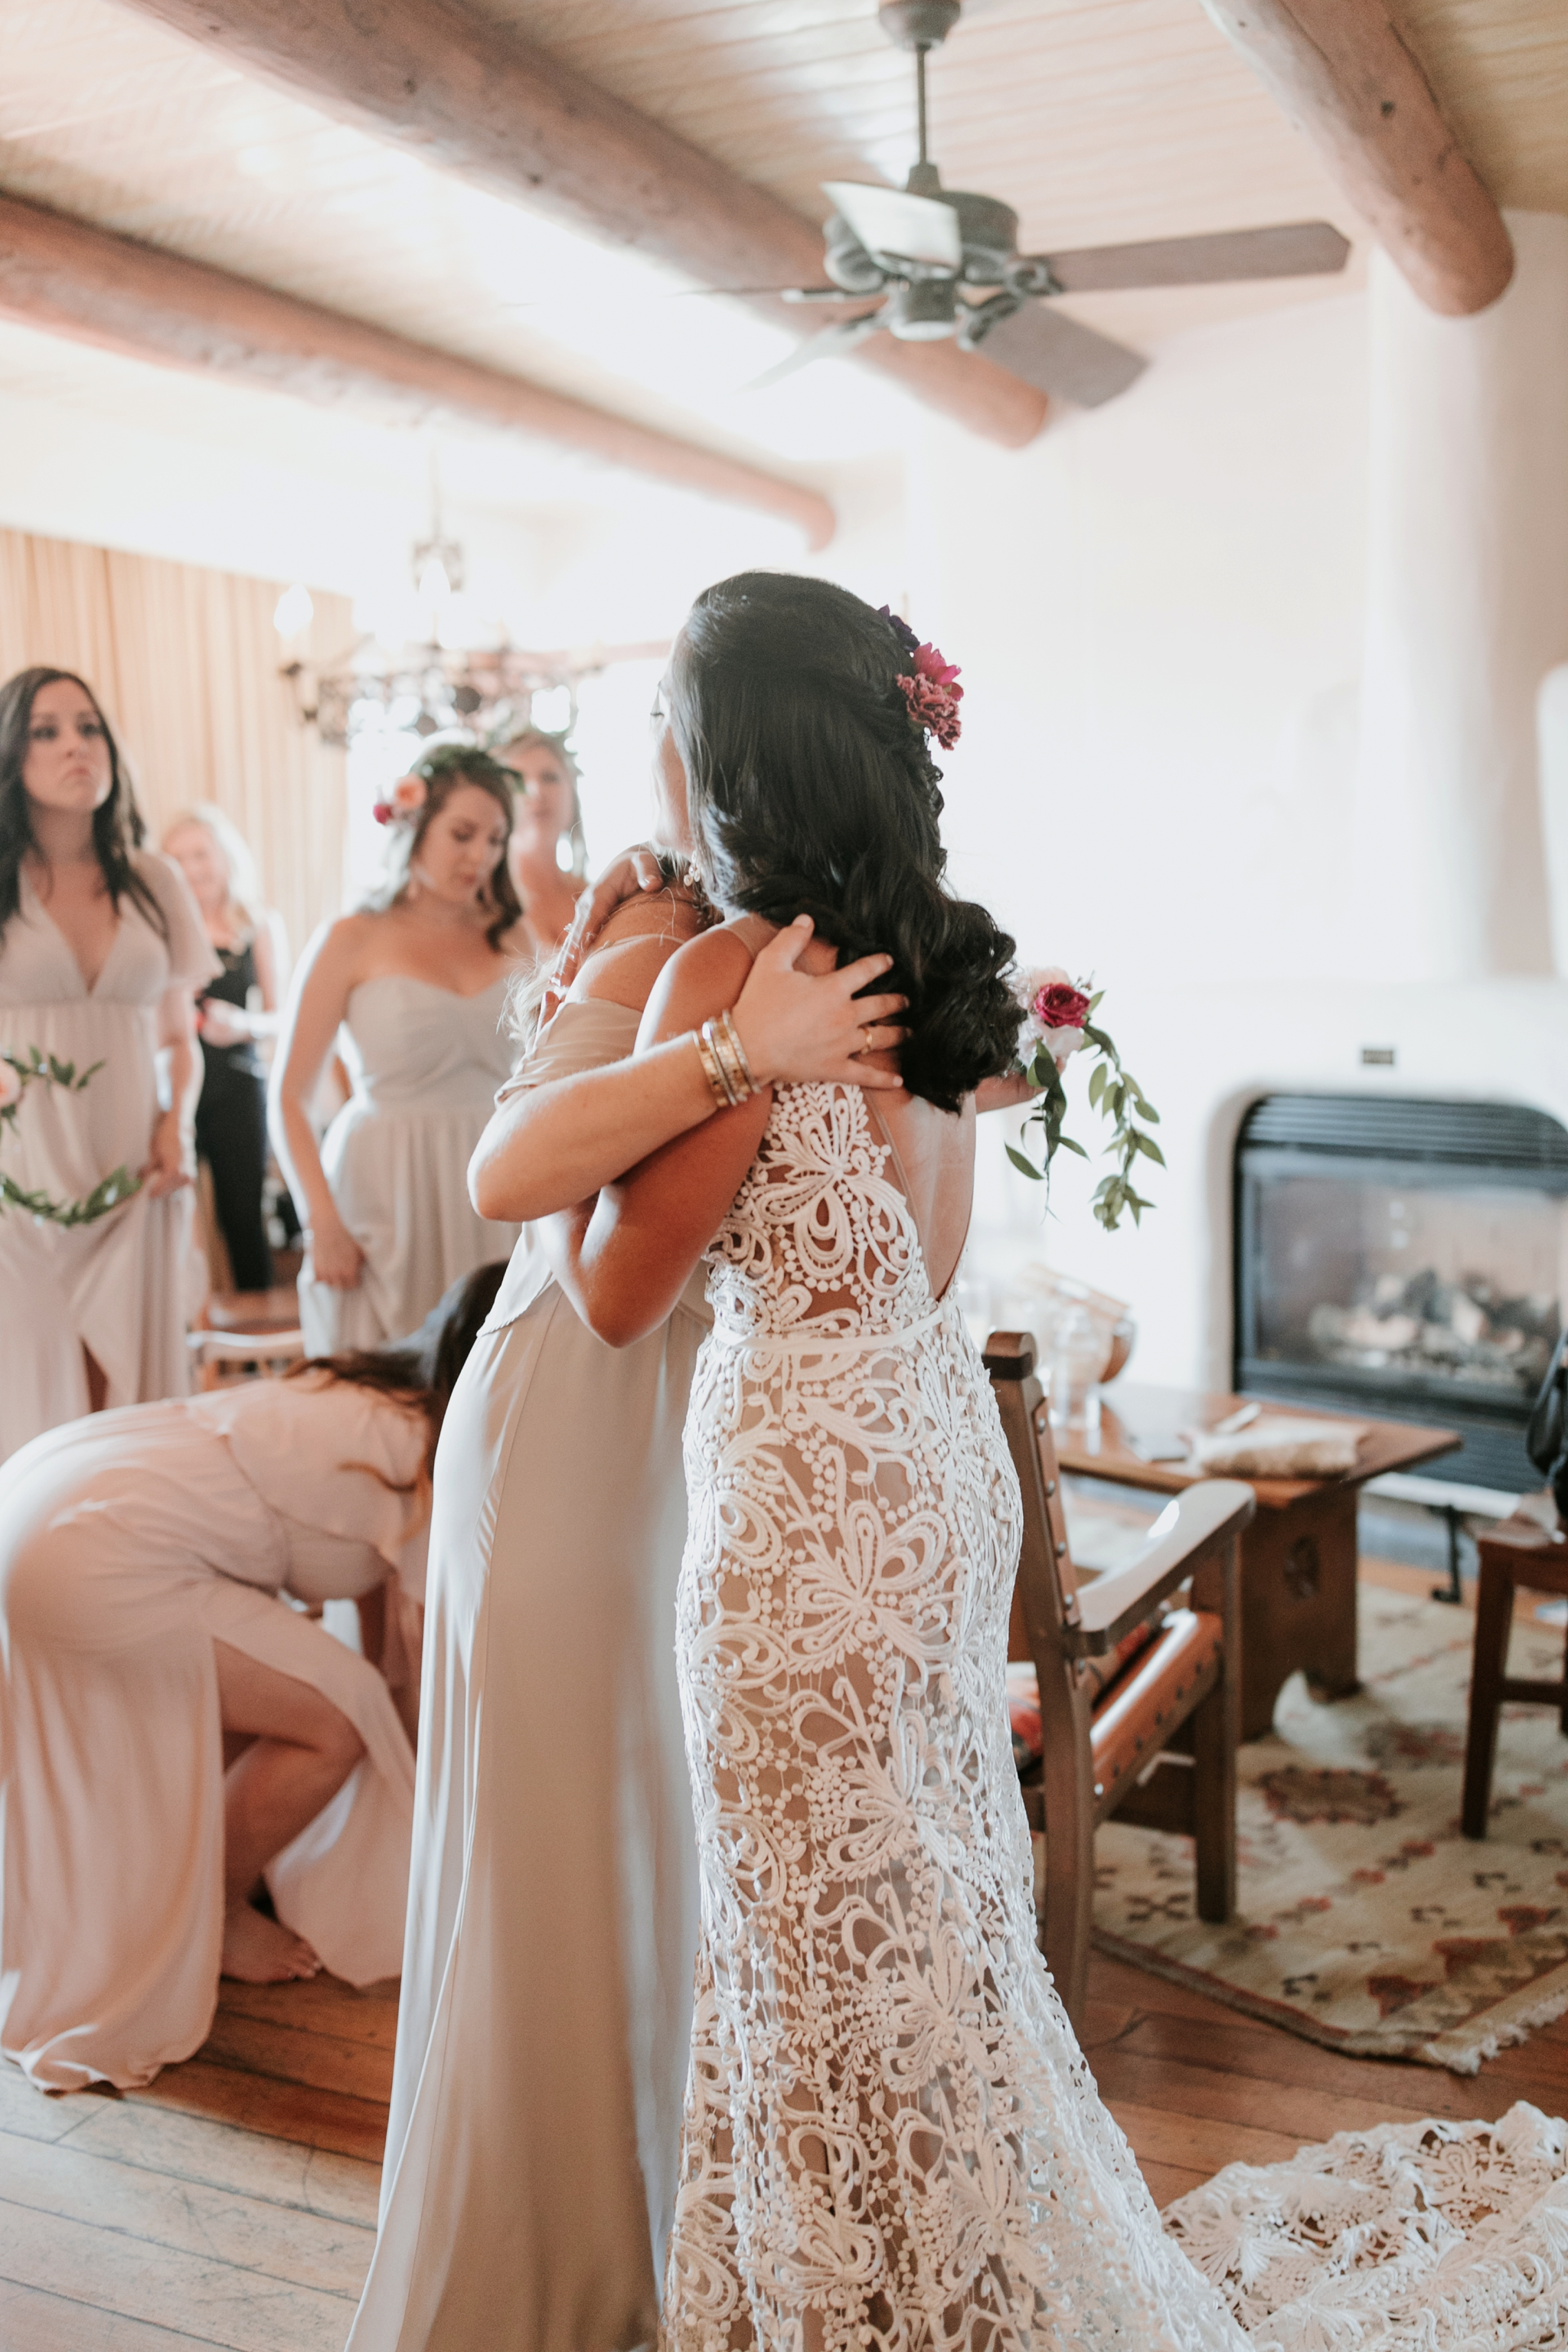 Alicia+lucia+photography+-+albuquerque+wedding+photographer+-+santa+fe+wedding+photography+-+new+mexico+wedding+photographer+-+summer+wedding+gowns+-+summer+wedding+style__0057.jpg